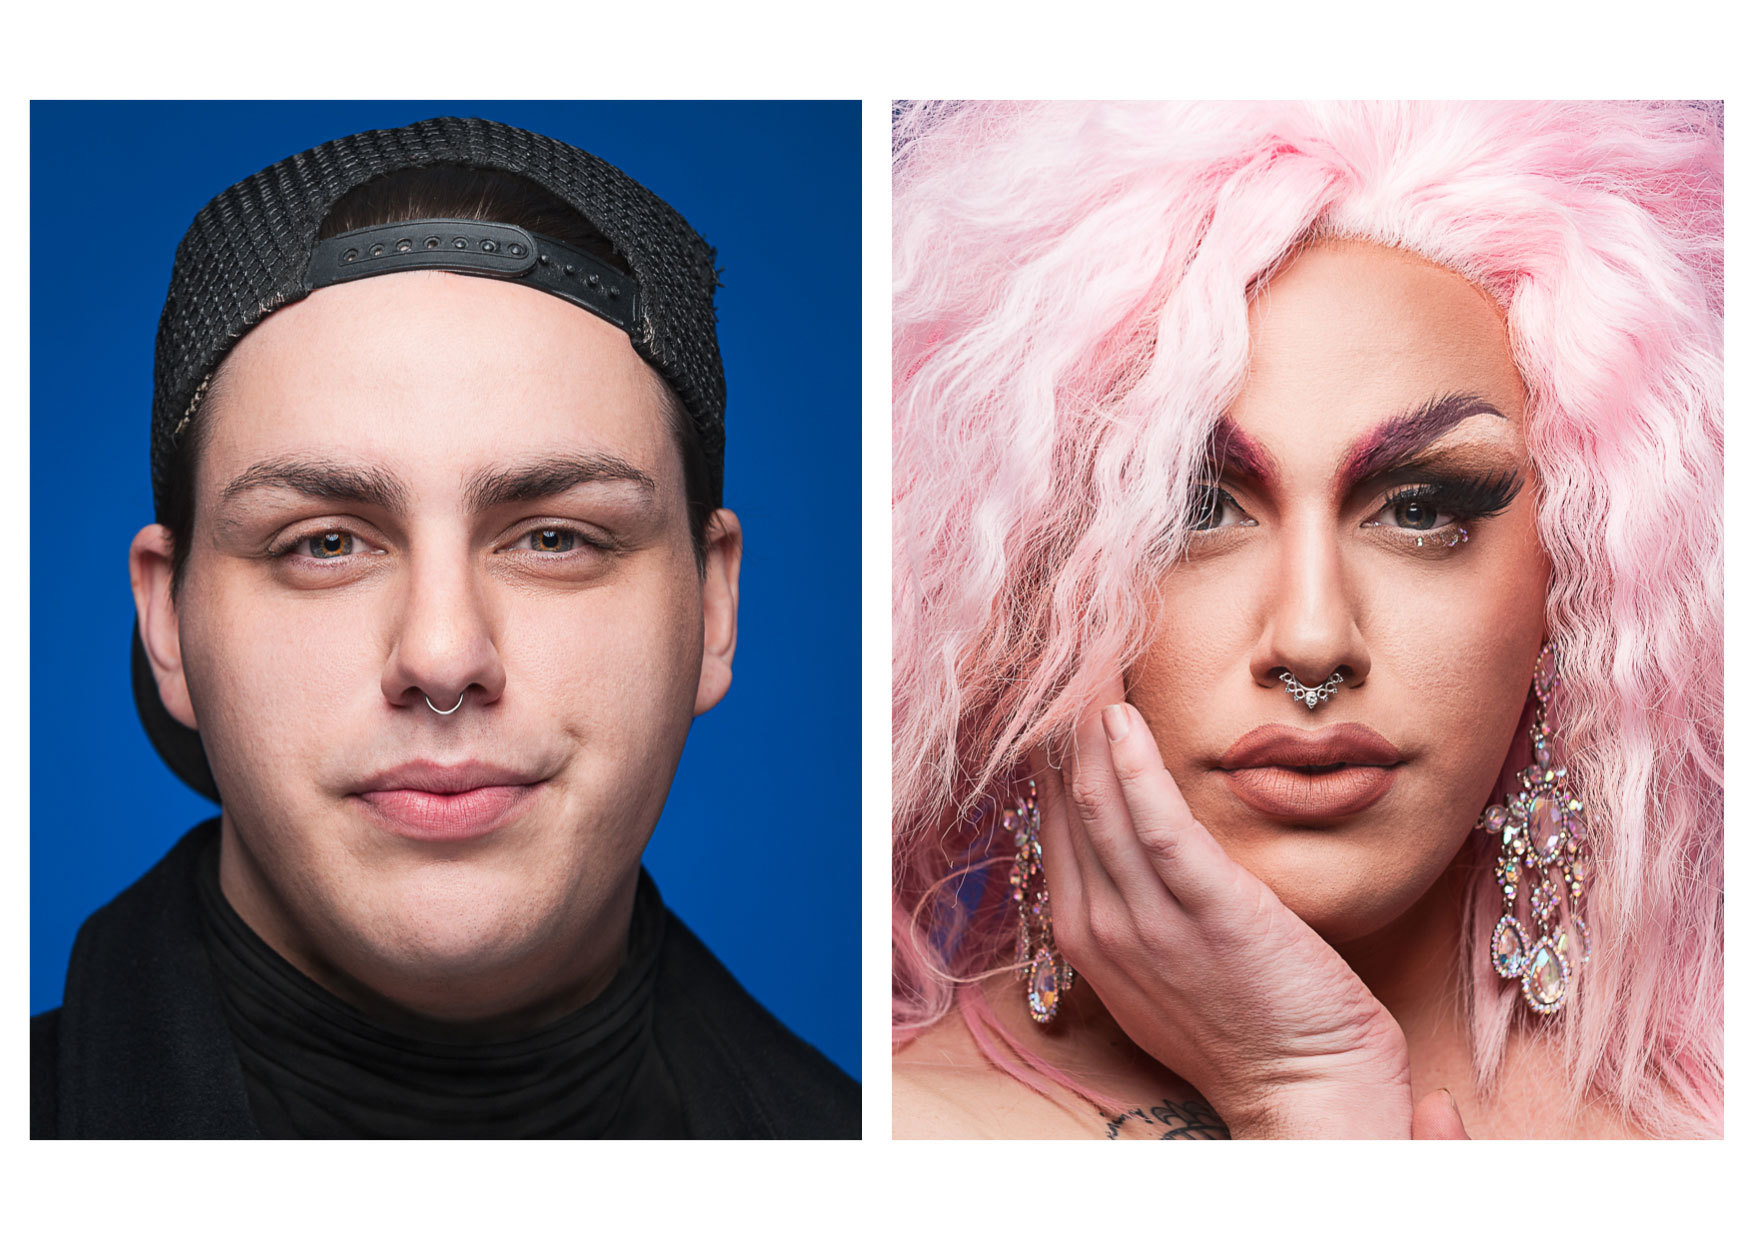 Mesmerizing Before and After Photos of Drag Transformations - VICE